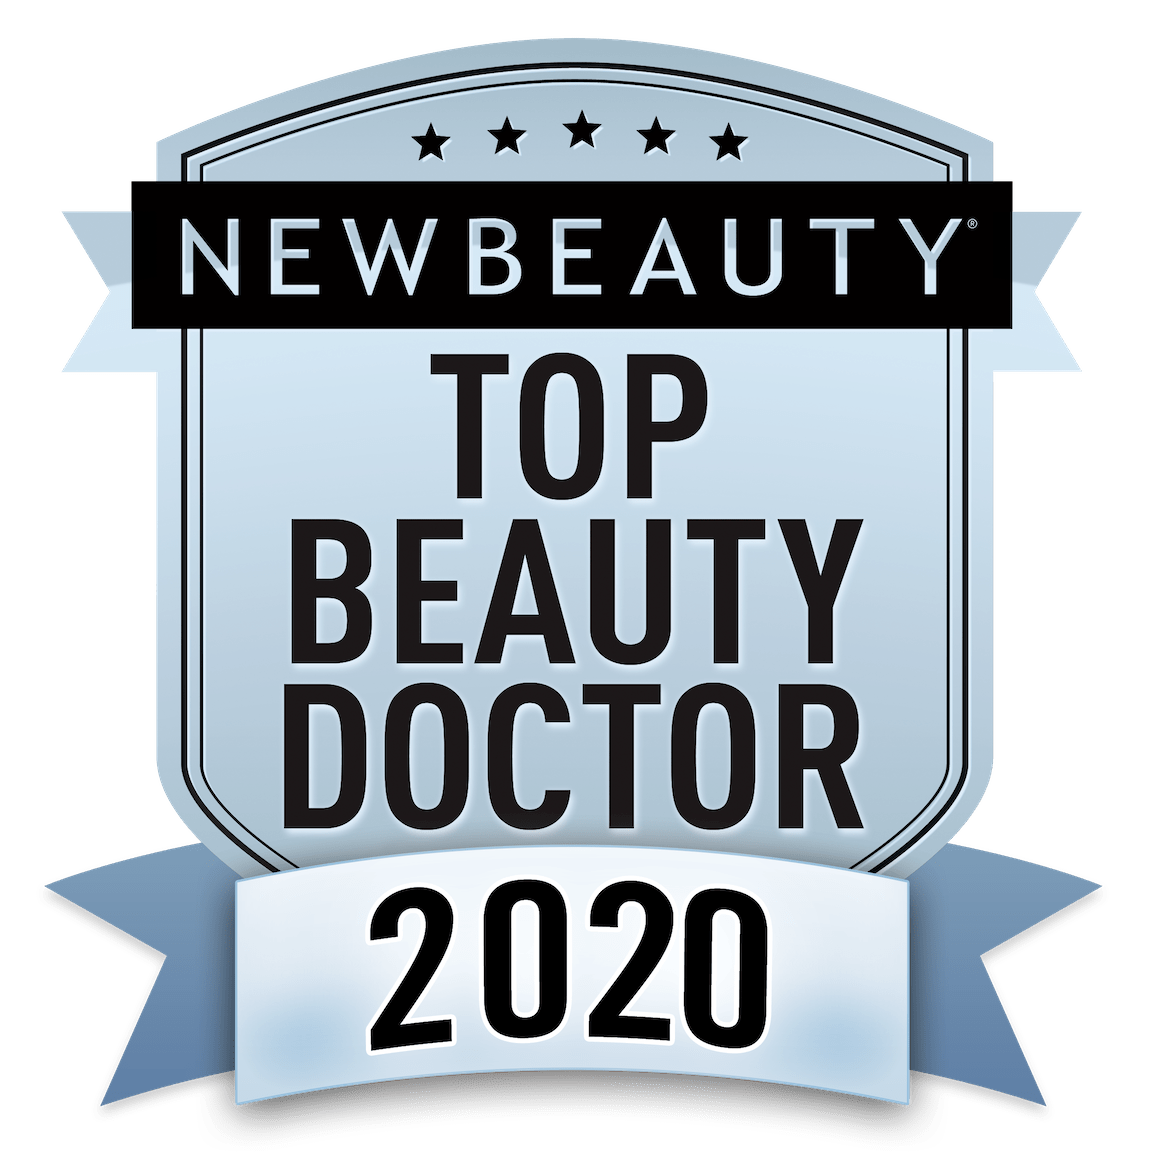 New Beauty Top Doctor 2020